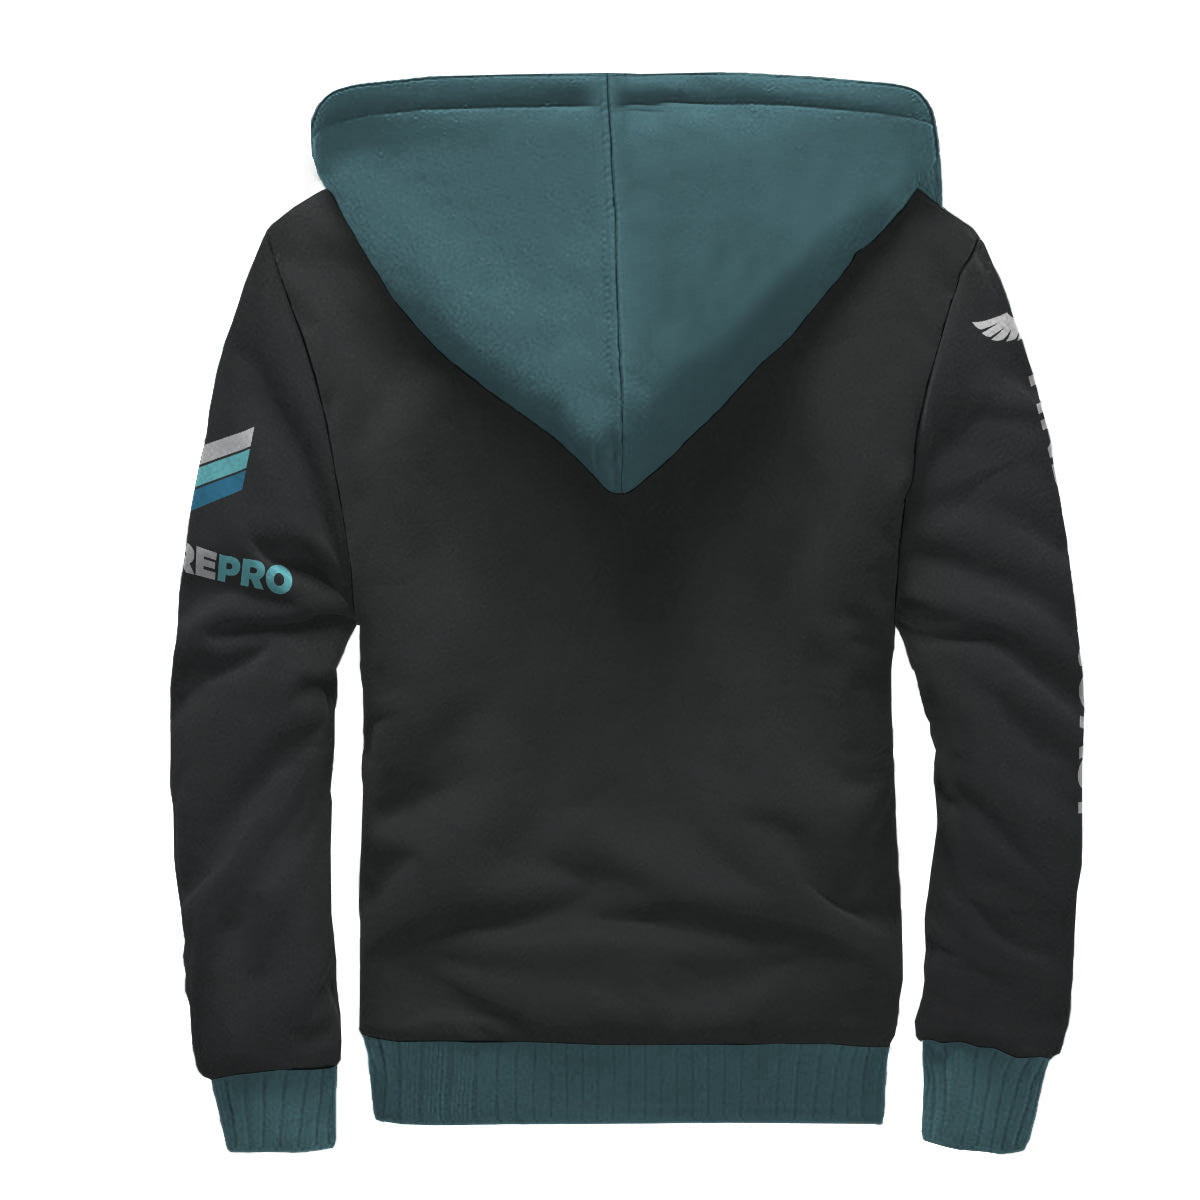 Find Your Coast Venture Pro Sherpa Lined Zip Up Hoodie - Find Your Coast Supply Co.